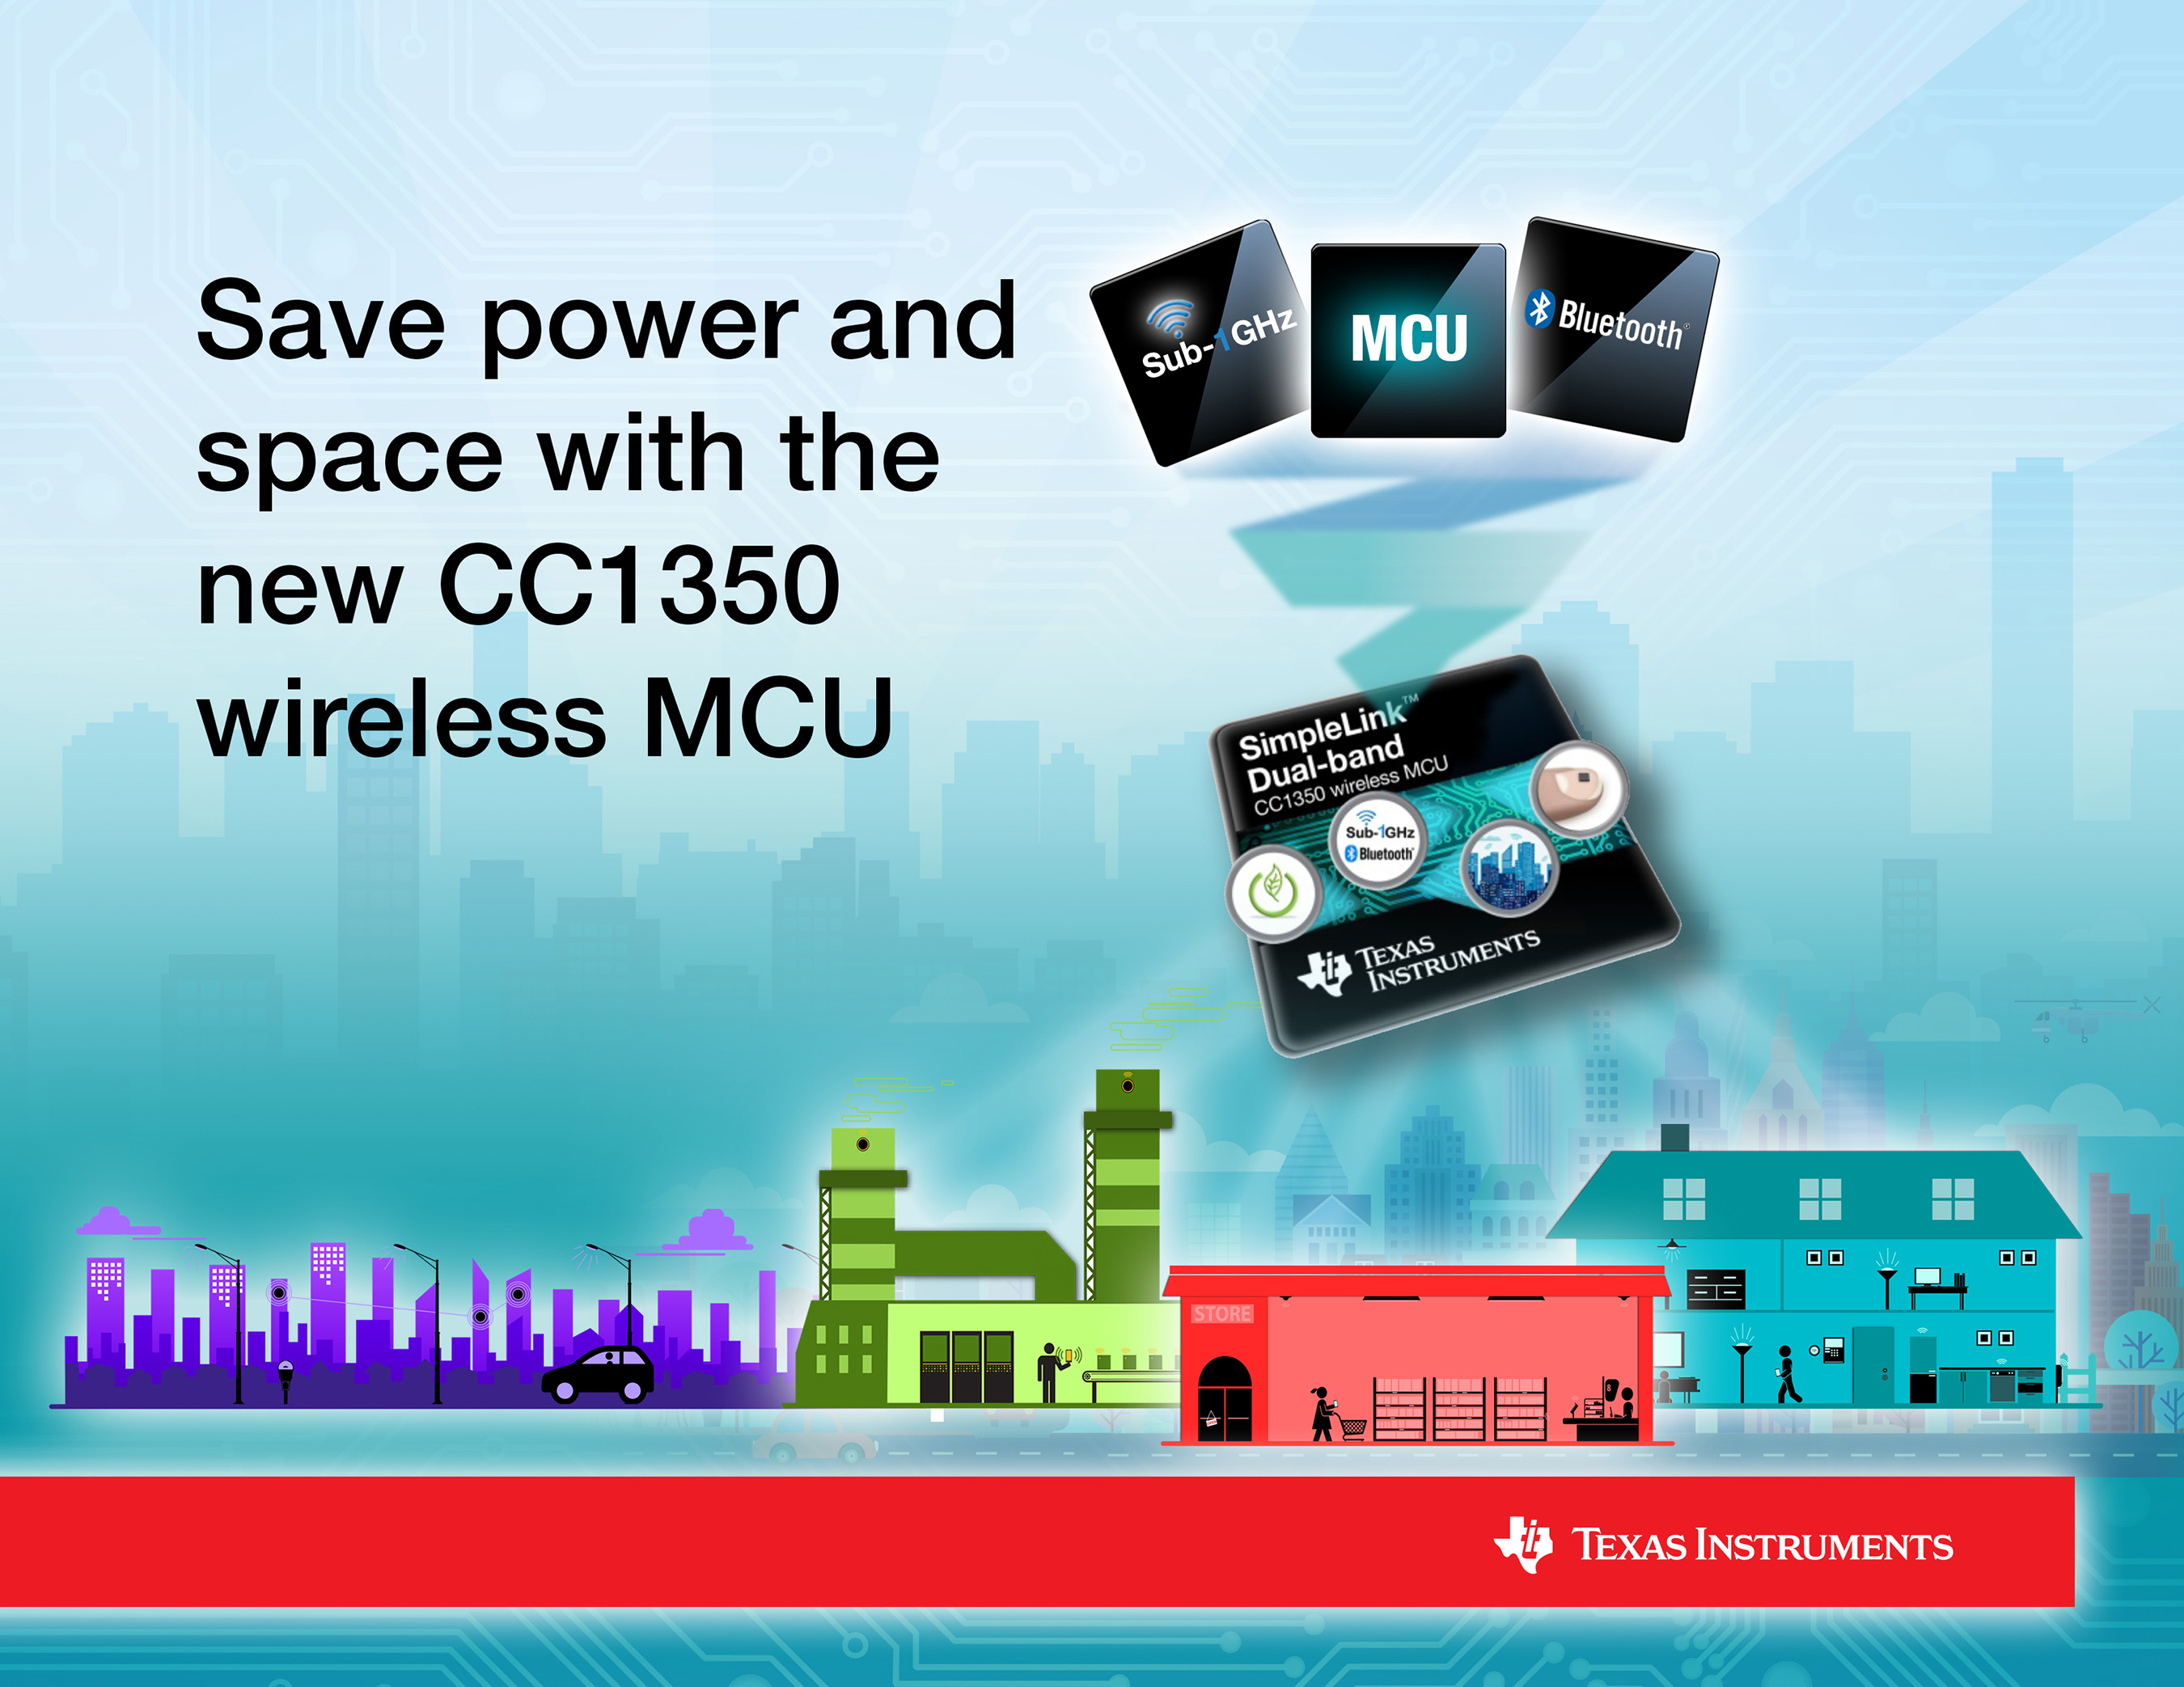 Save power and space with the new CC1350 wireless MCU from TI